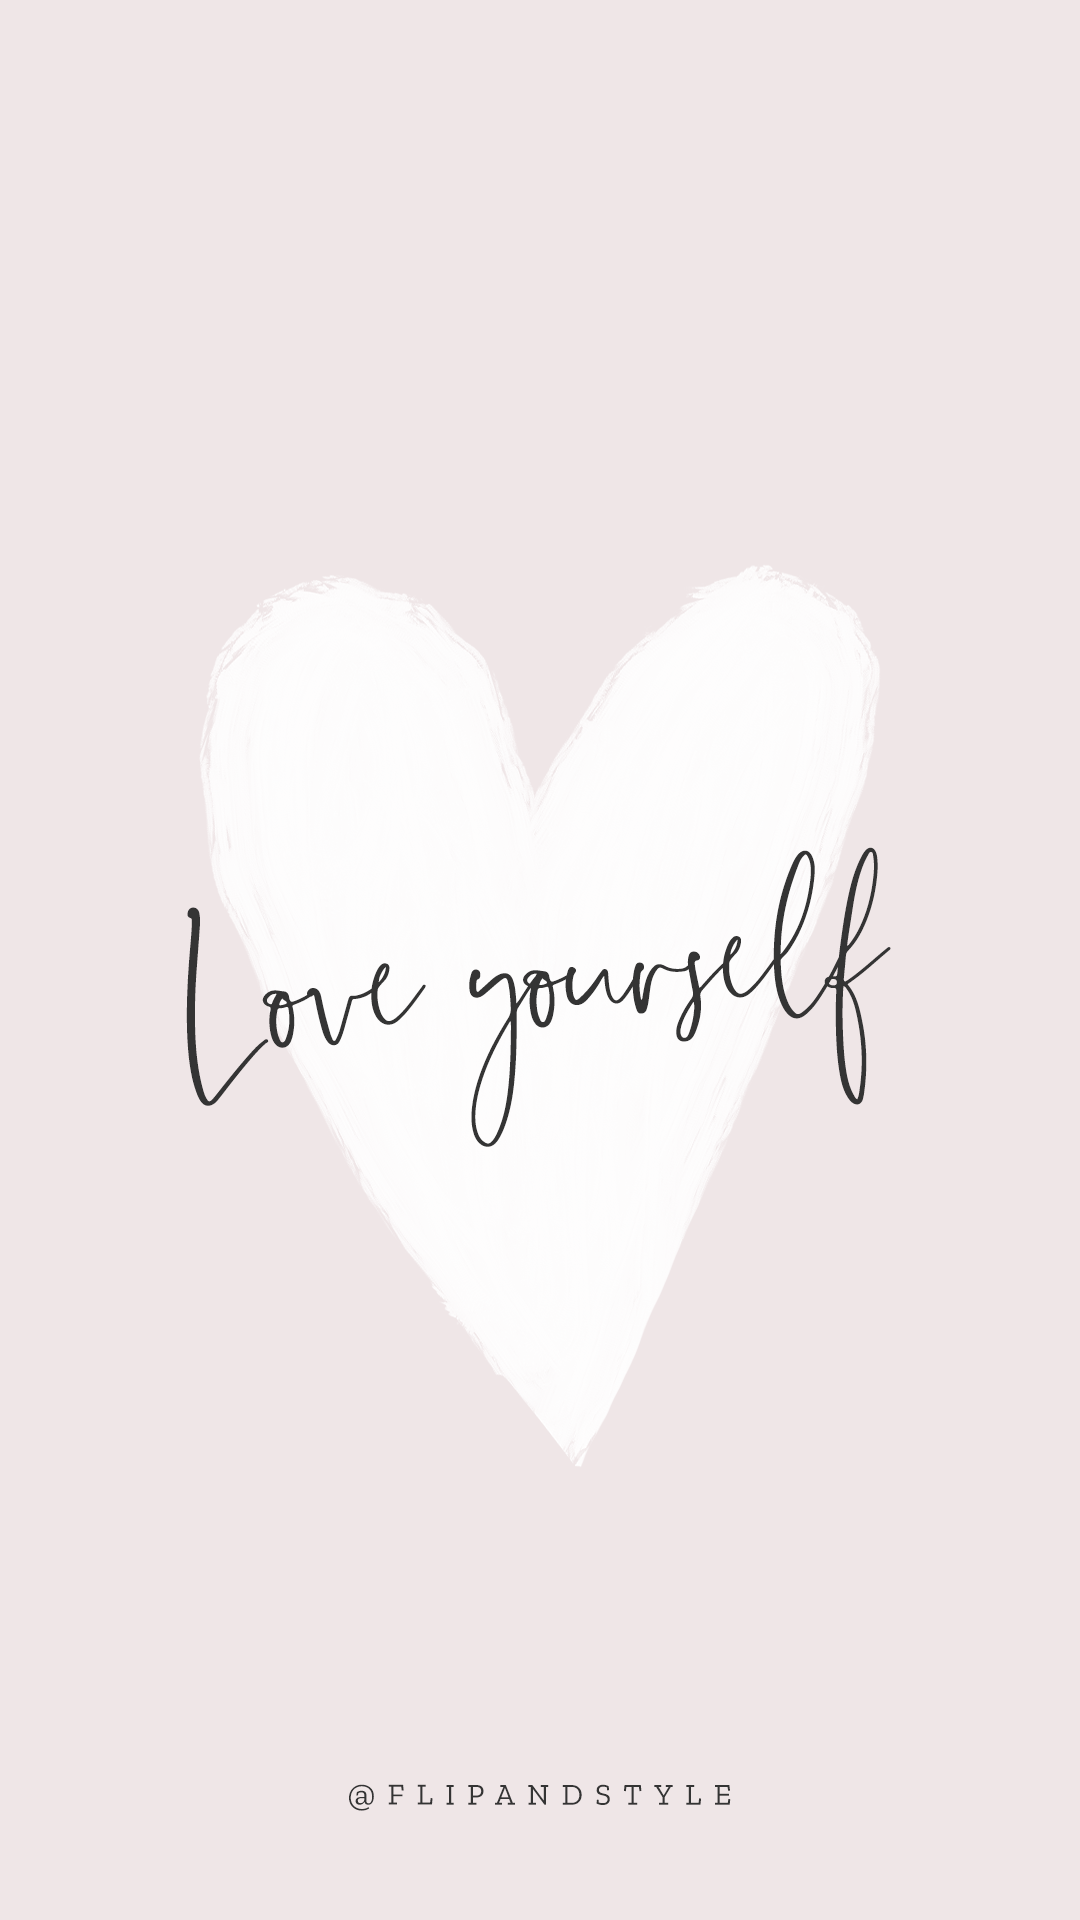 1080x1920 23+] Pink Love Quotes Wallpapers on WallpaperSafari